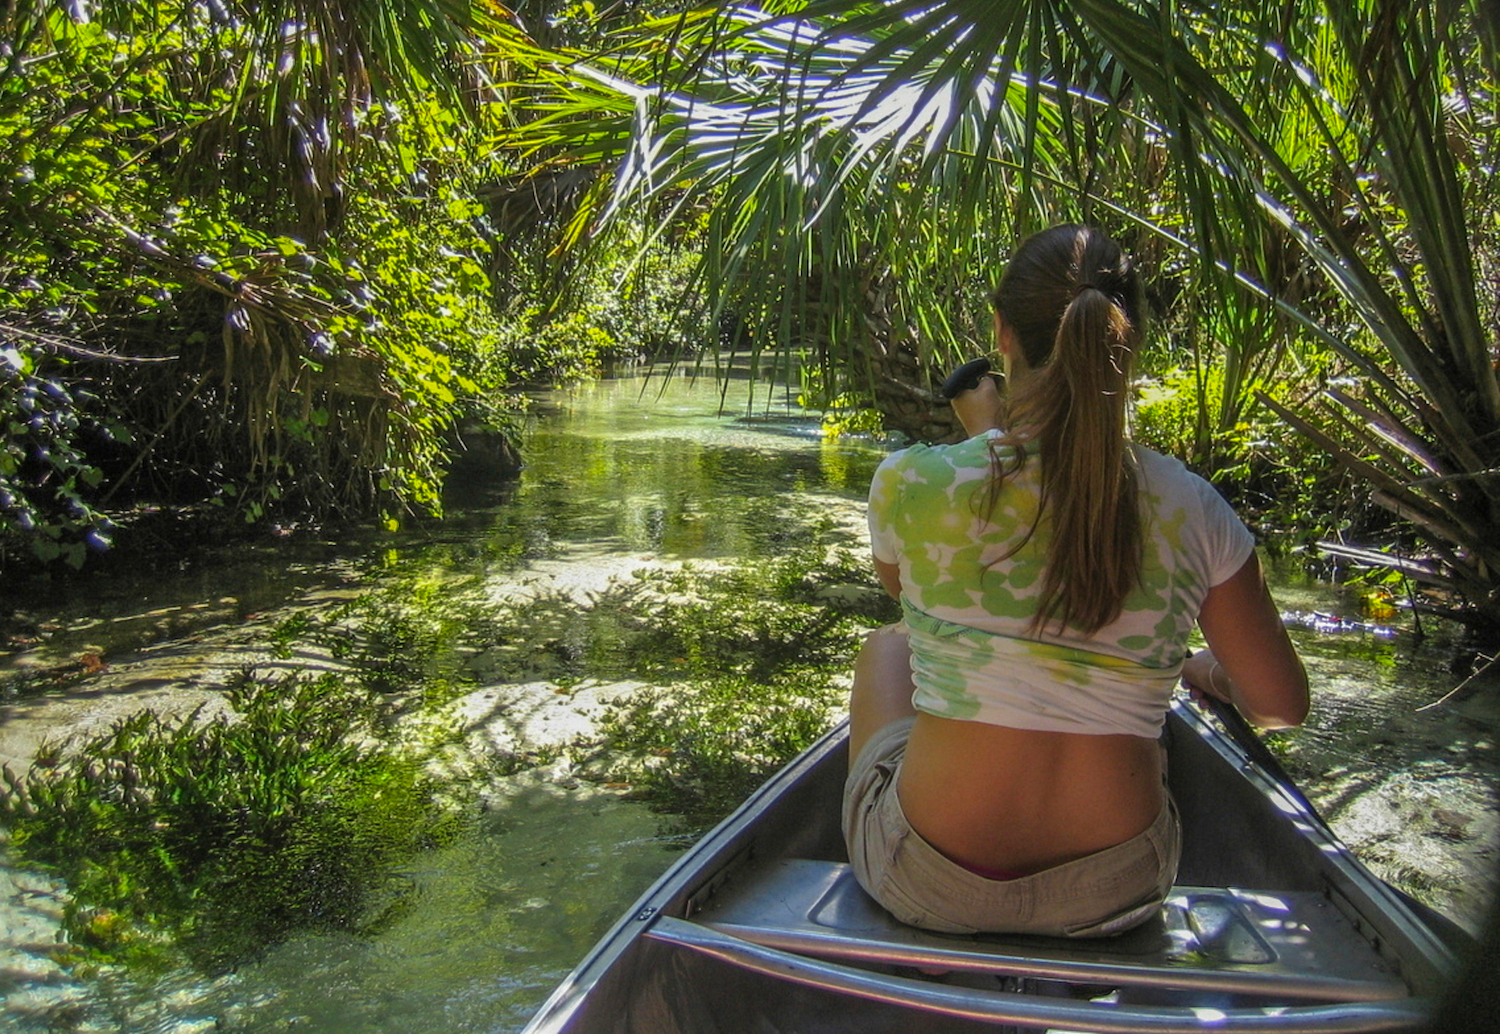 Woman Canoeing Down Juniper Run In The Ocala National Forest, FL - Tropical and lush looking jungle canopy with crystal clear water